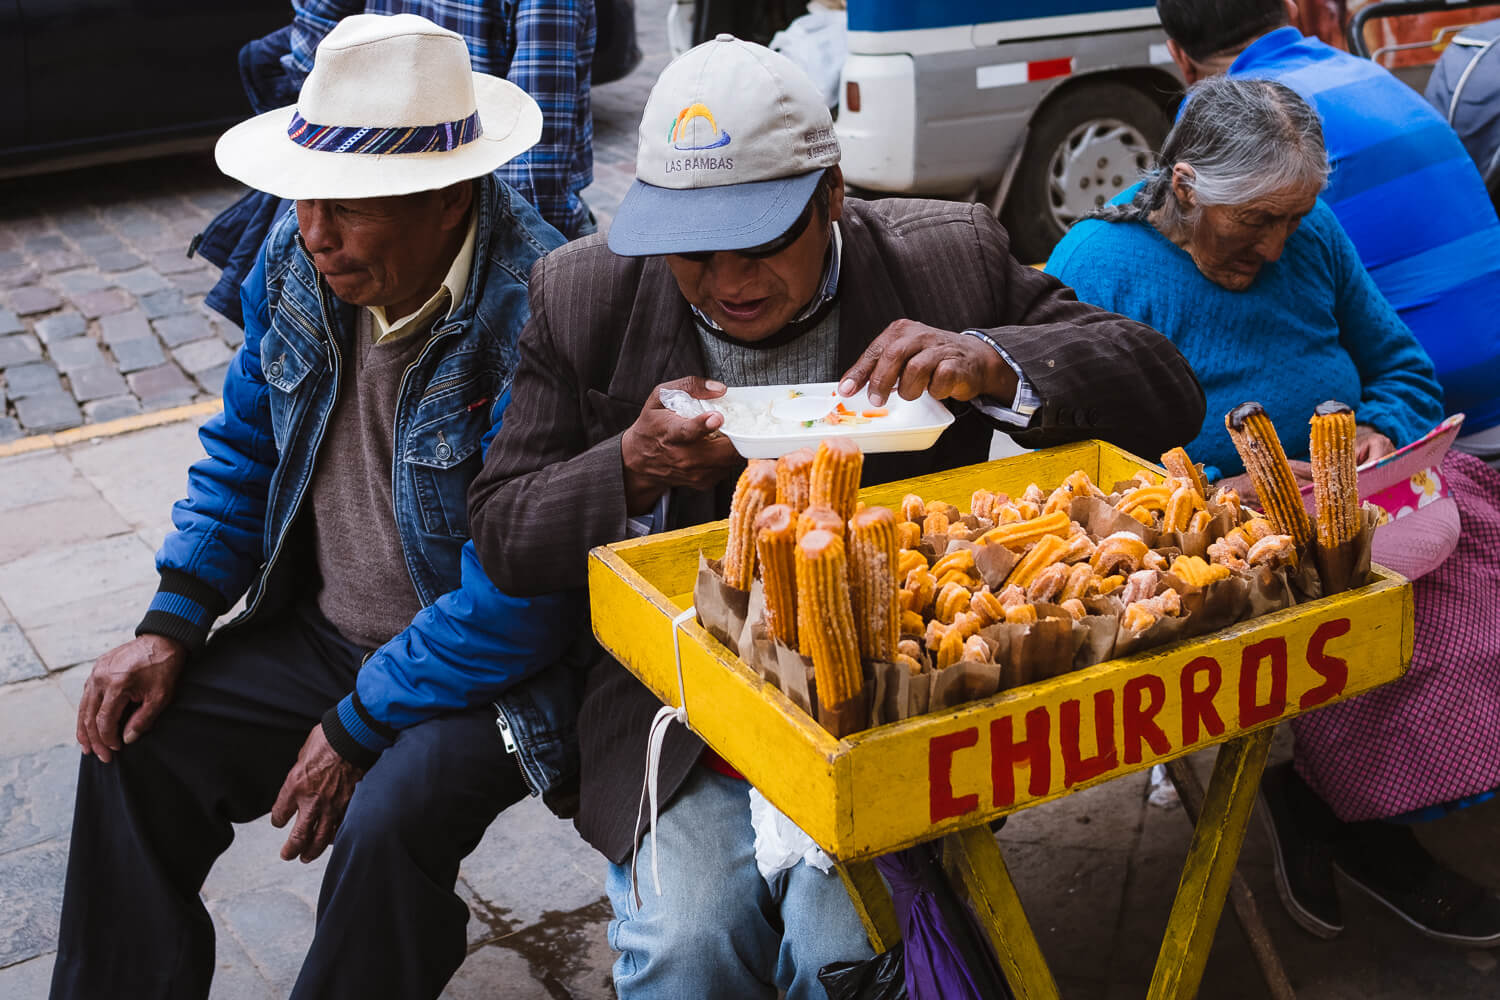 """Men selling churros, Cusco. Travel photography and guide by © Natasha Lequepeys for """"And Then I Met Yoko"""". #cusco #peru #photoblog #travelblog #peruitinerary #cuscoitinerary"""